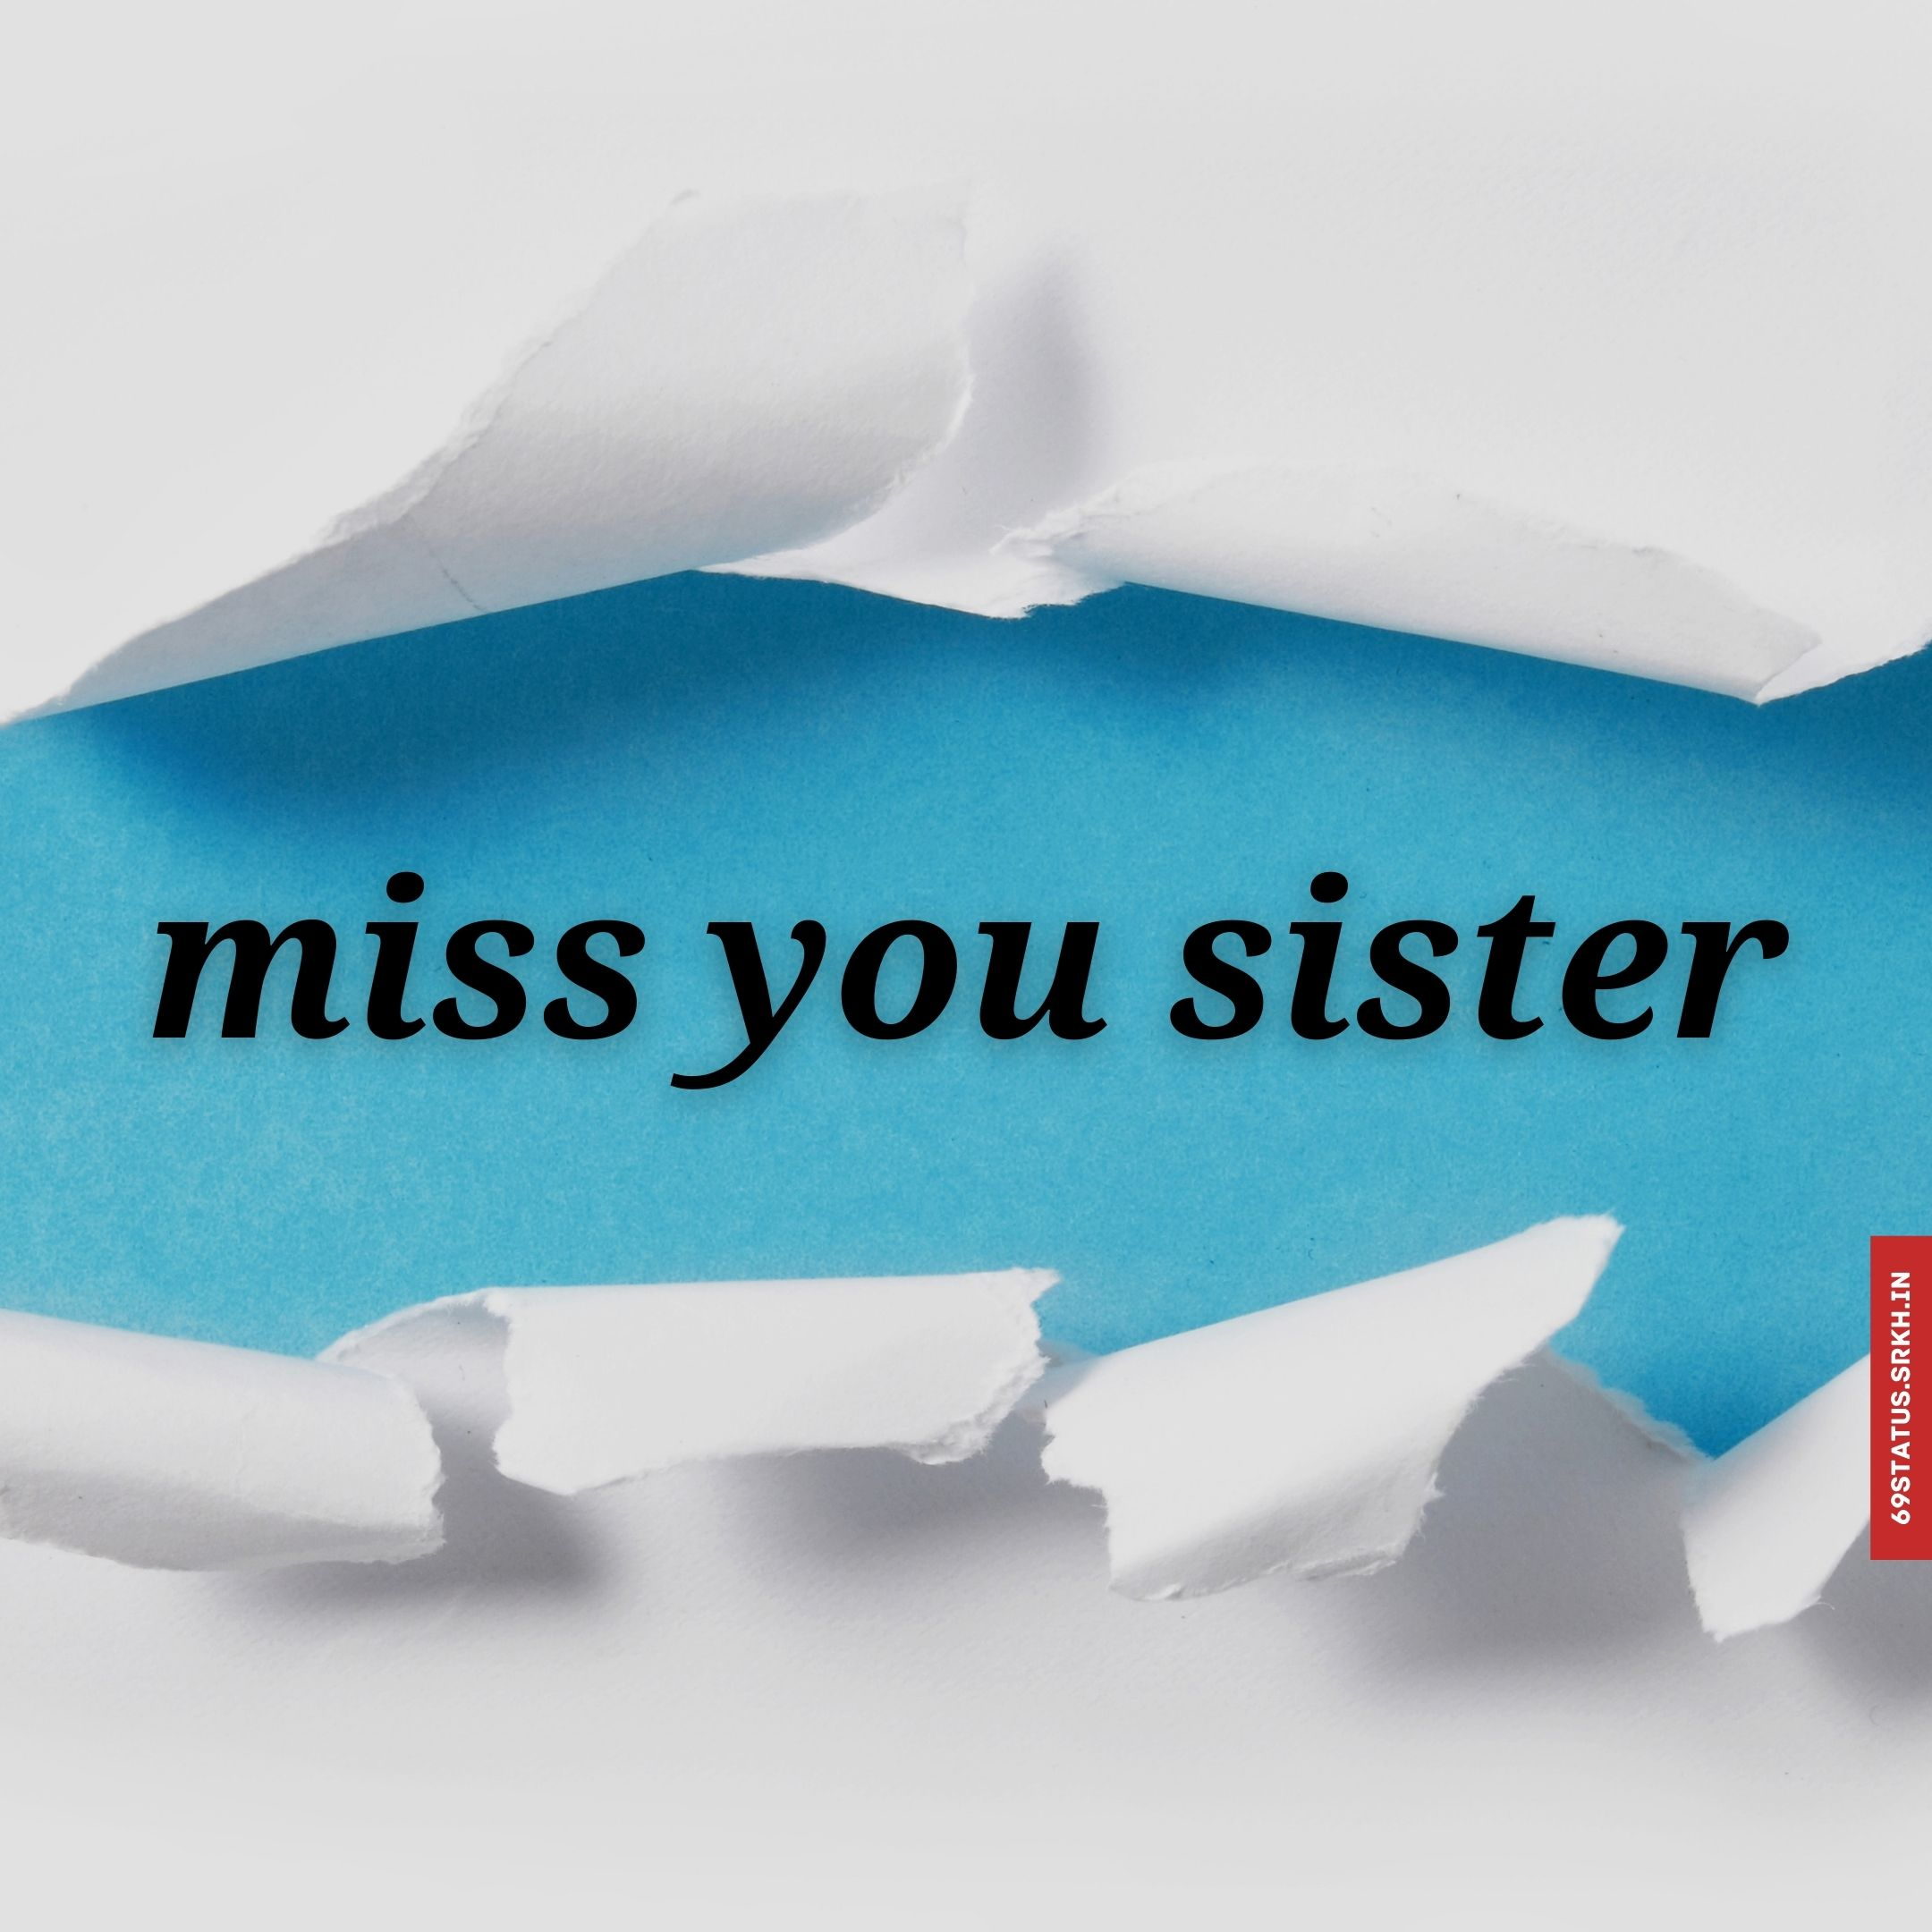 Miss you sister images full HD free download.